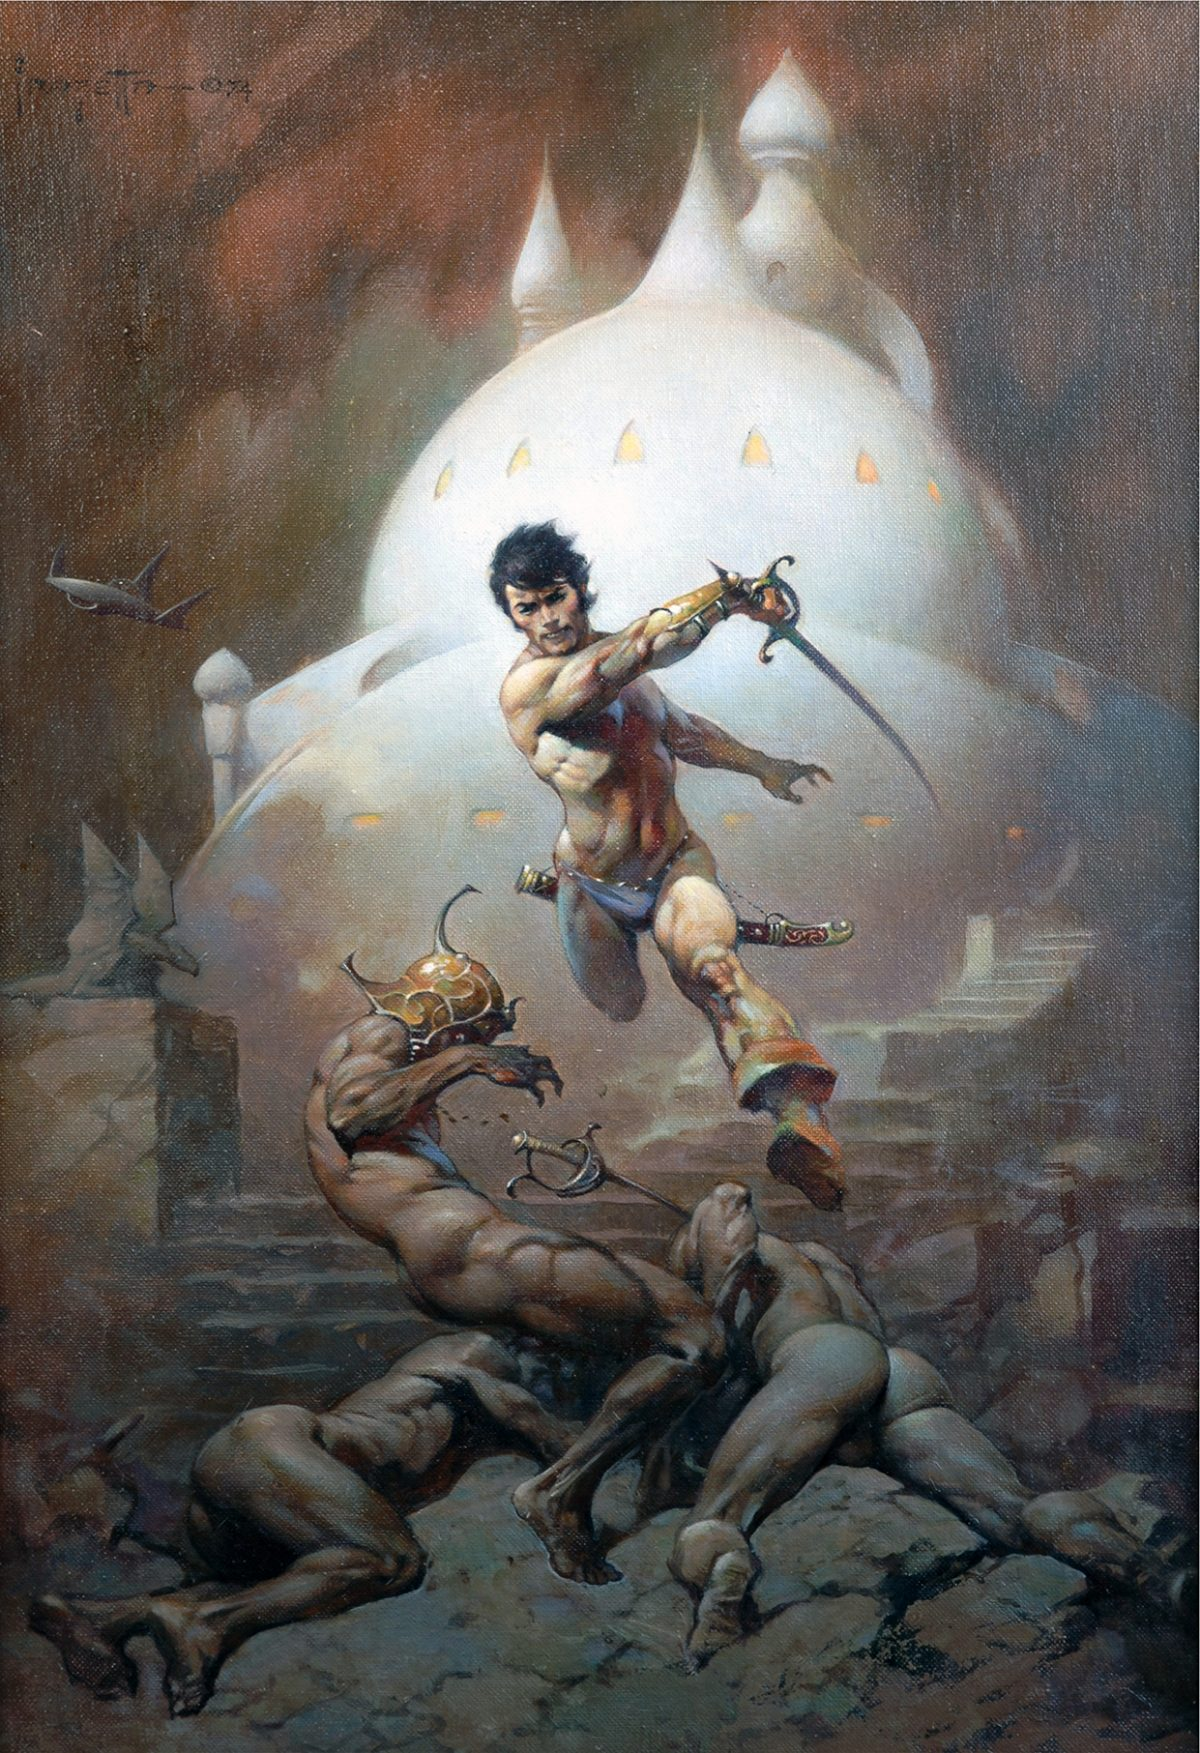 Frank Frazetta, Swords of Mars and Synthetic Men of Mars, 1966, Oil on canvasboard